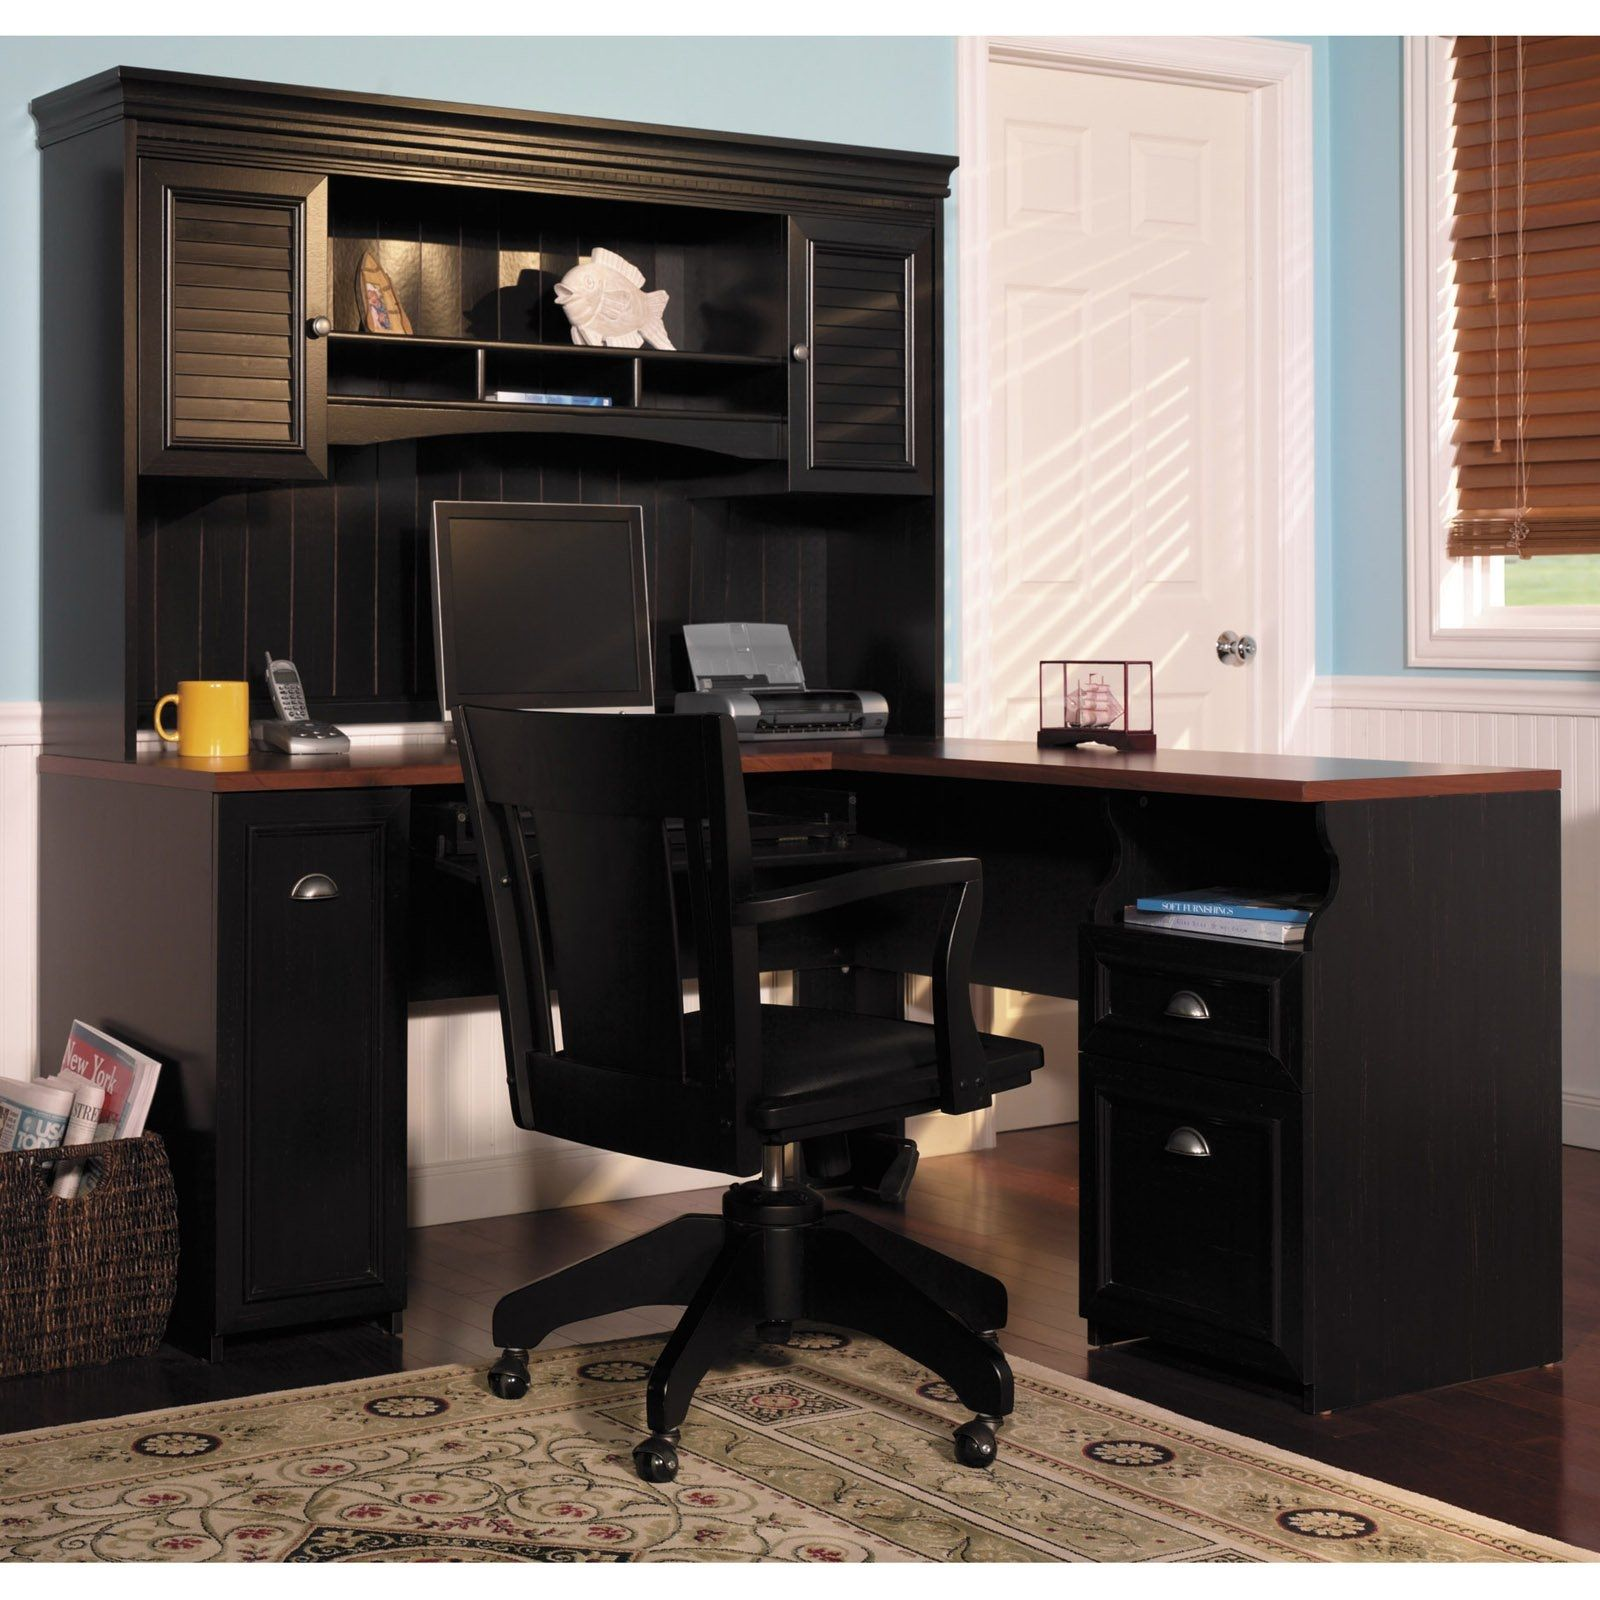 furniture desks space for white designing home design an decorating office room bush fine at